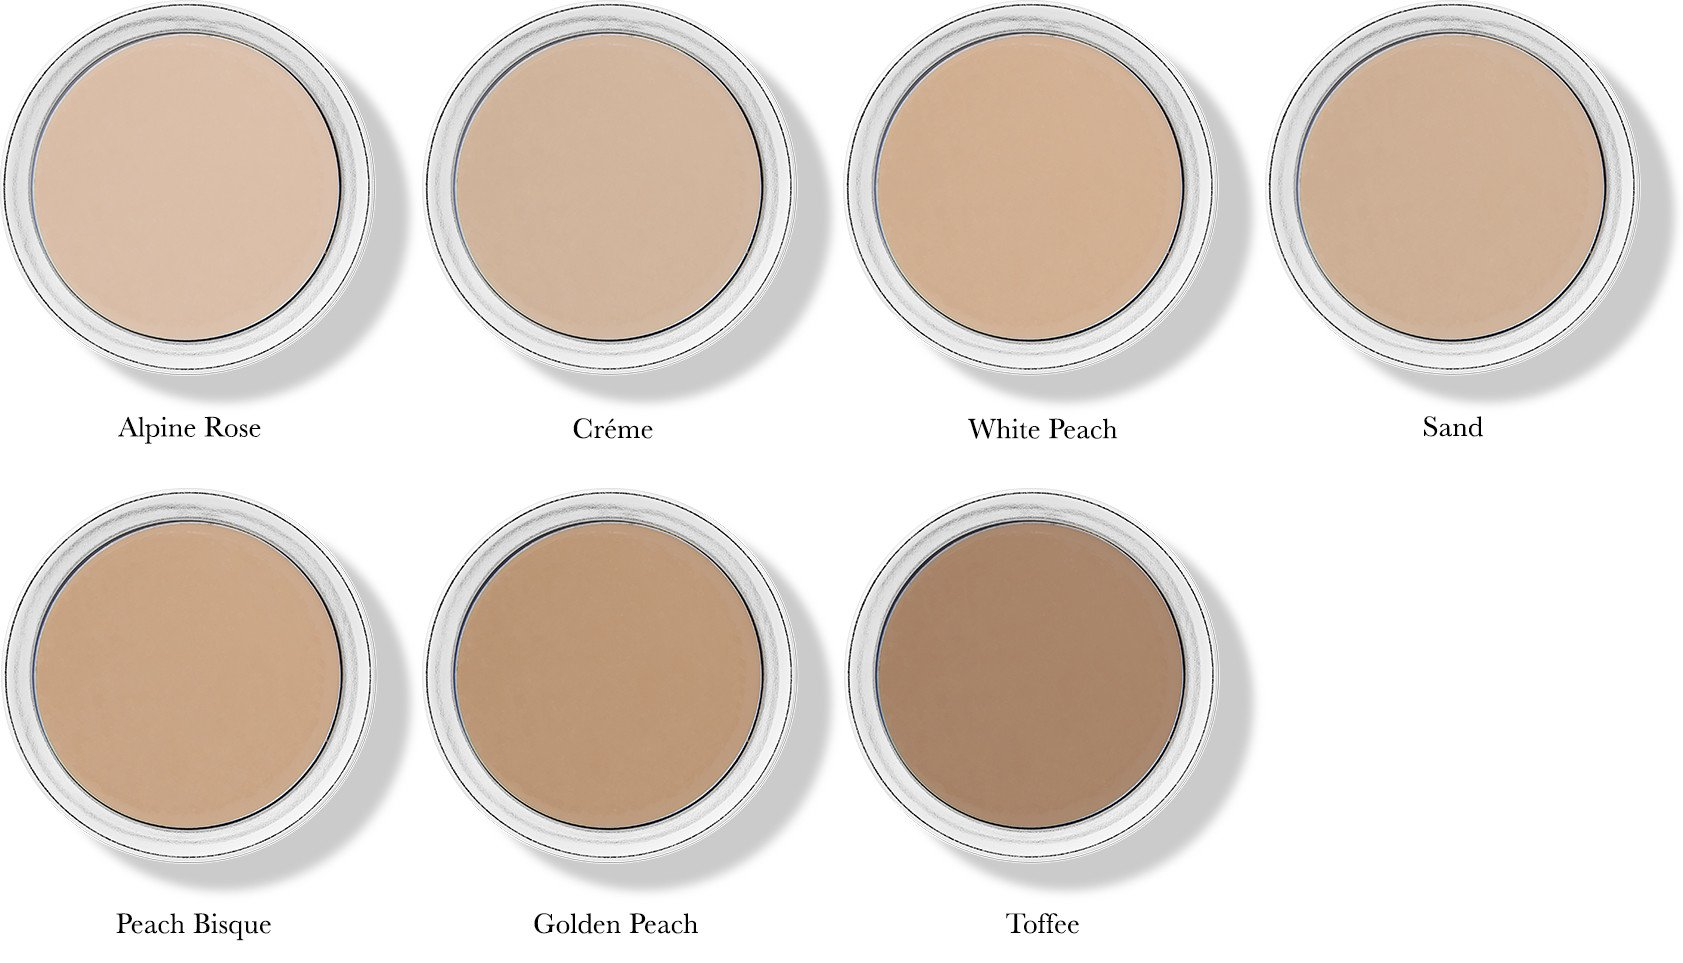 100% Pure Naturkosmetik Foundation / Fruit Pigmented Cream Foundation